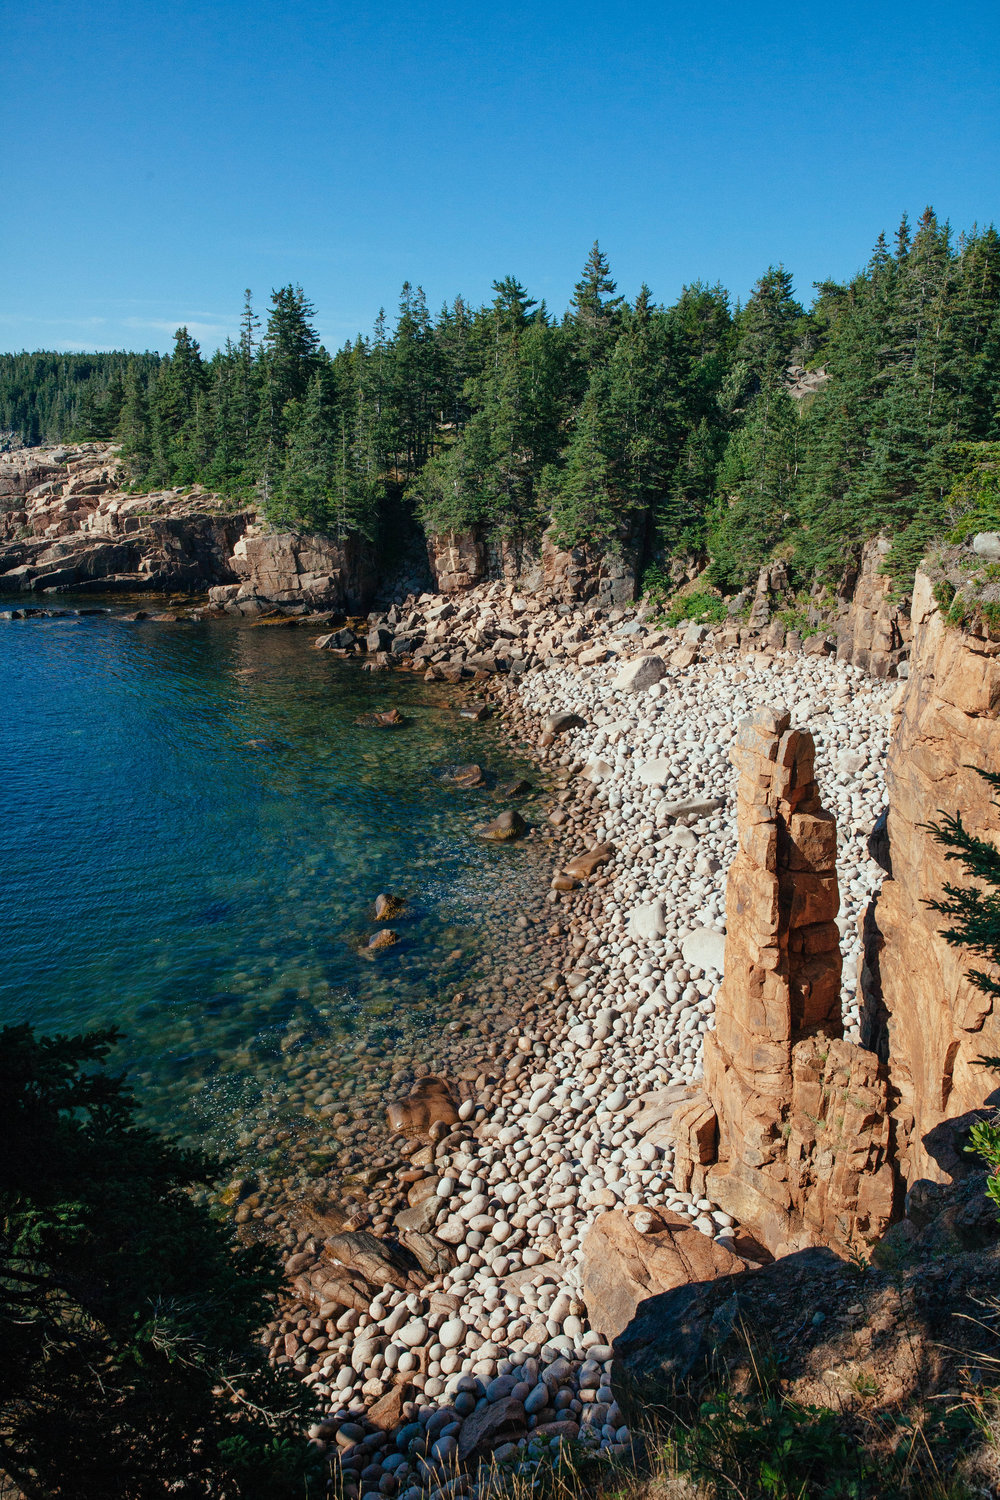 A gorgeous view of one of the rocky beaches in Acadia National Park in Mount Desert Island, Maine.